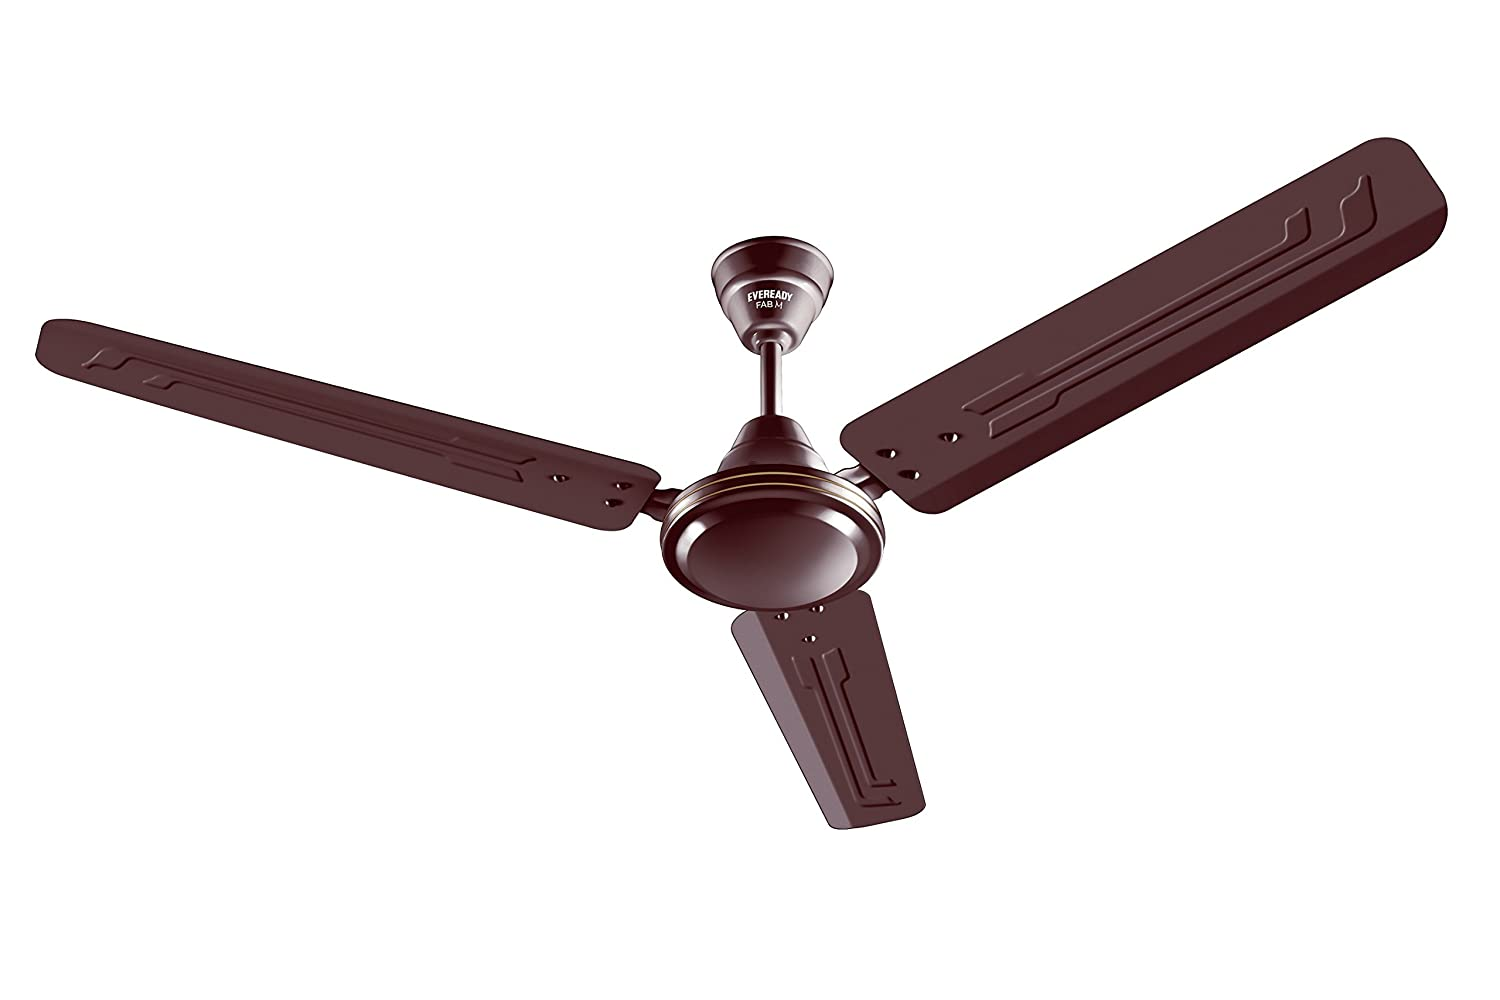 Buy eveready fab m 1200mm 3 blades ceiling fan brown online at low buy eveready fab m 1200mm 3 blades ceiling fan brown online at low prices in india amazon mozeypictures